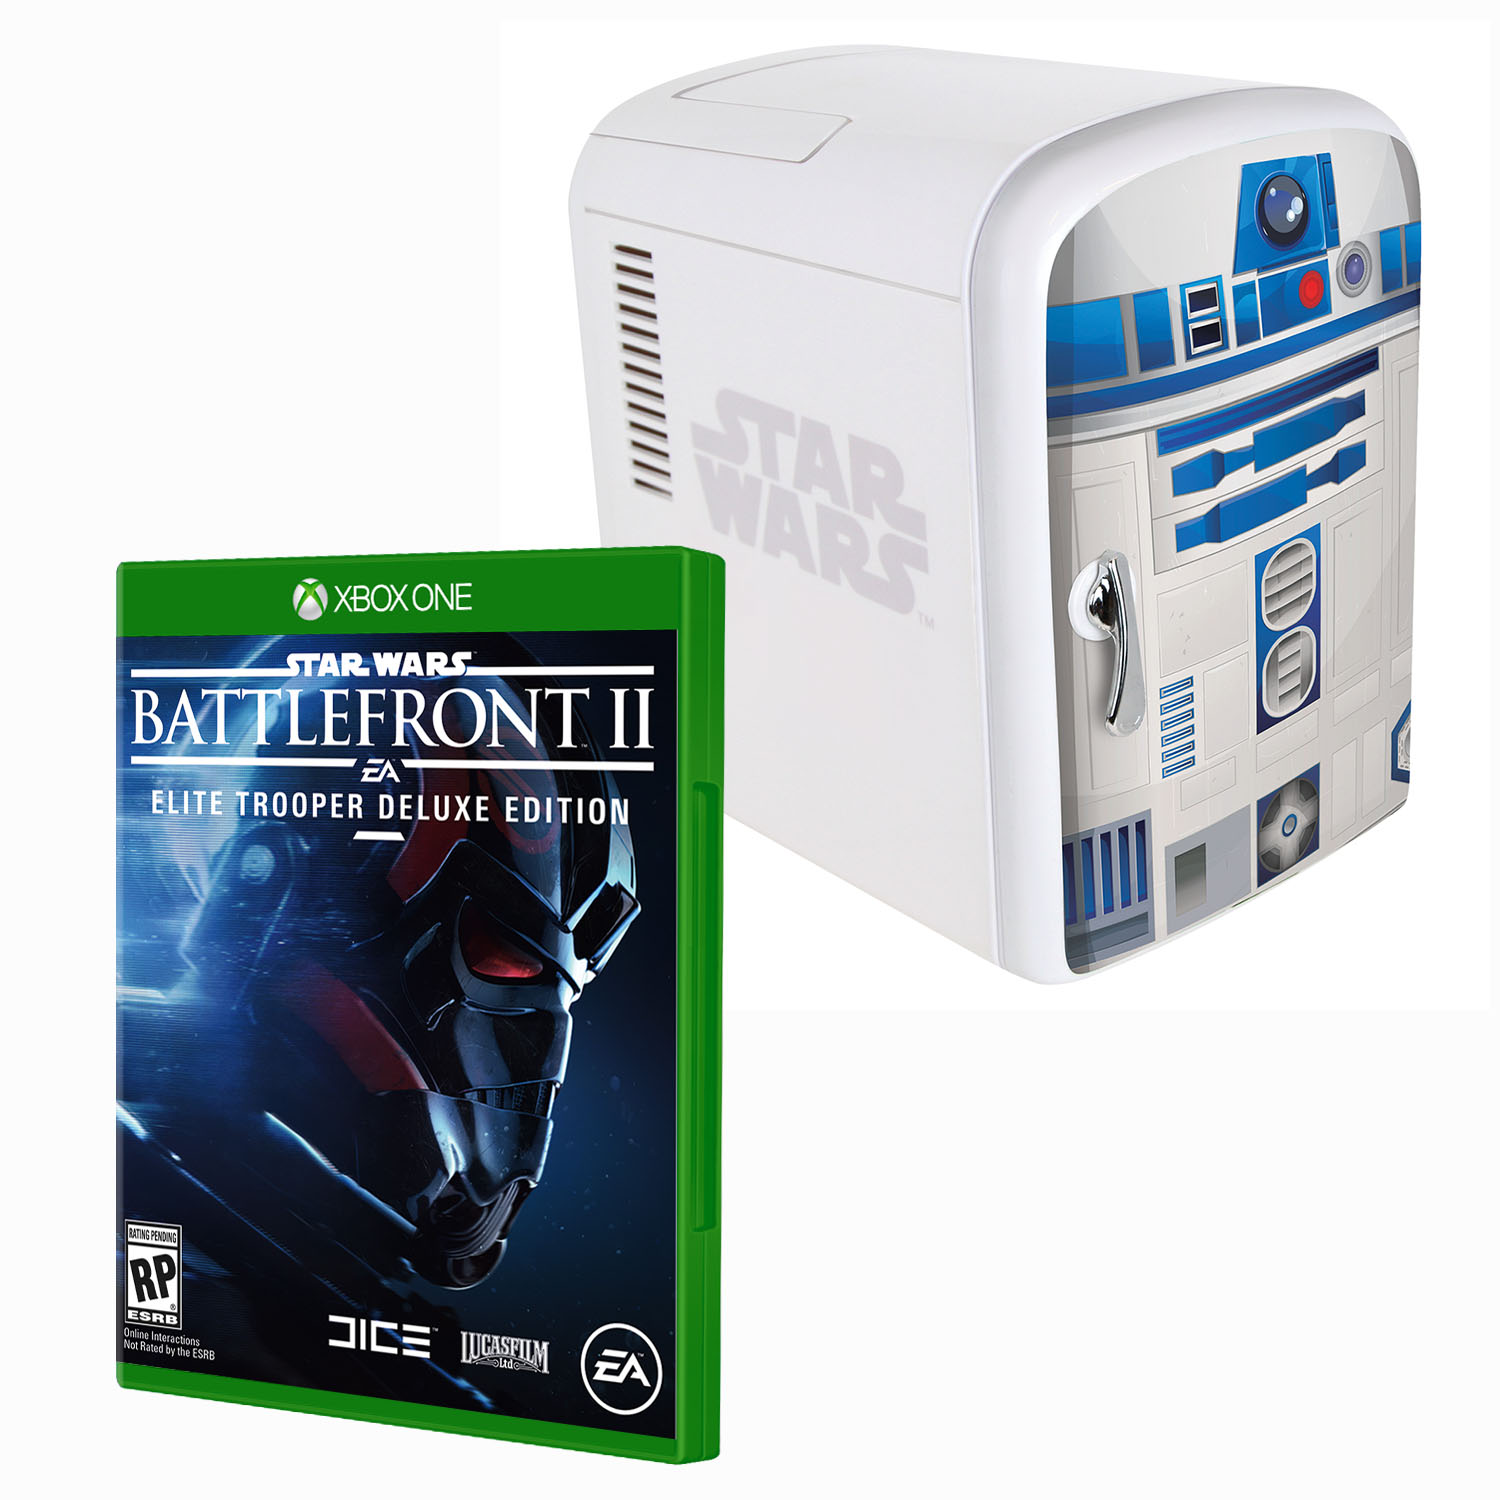 Battlefront 2 Deluxe Edition XBX1 R2D2 Fridge Bundle(Xbox One)